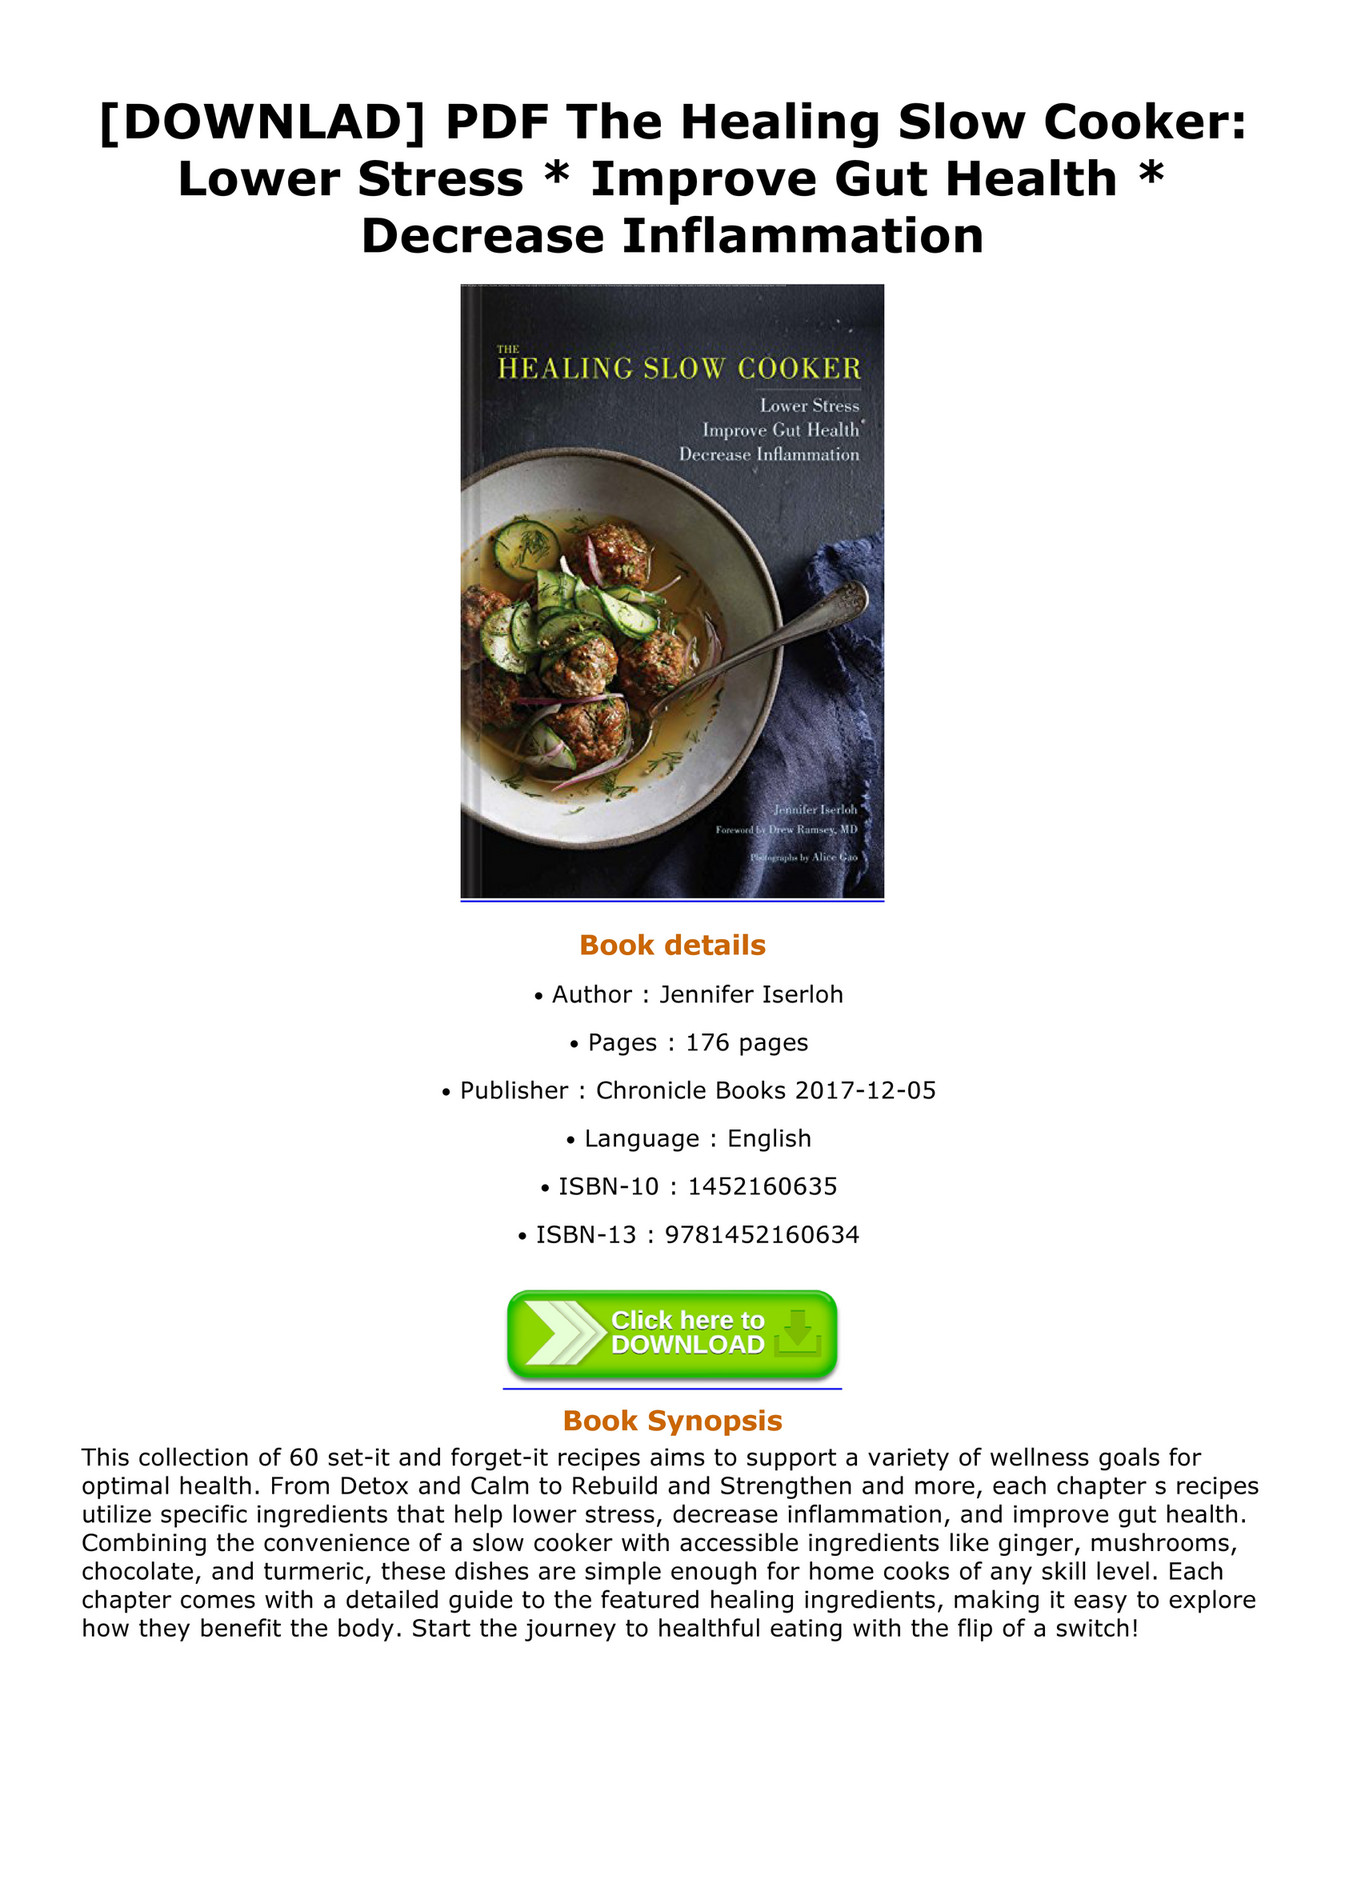 Glover BOOK - DOWNLAD PDF The Healing Slow Cooker Lower